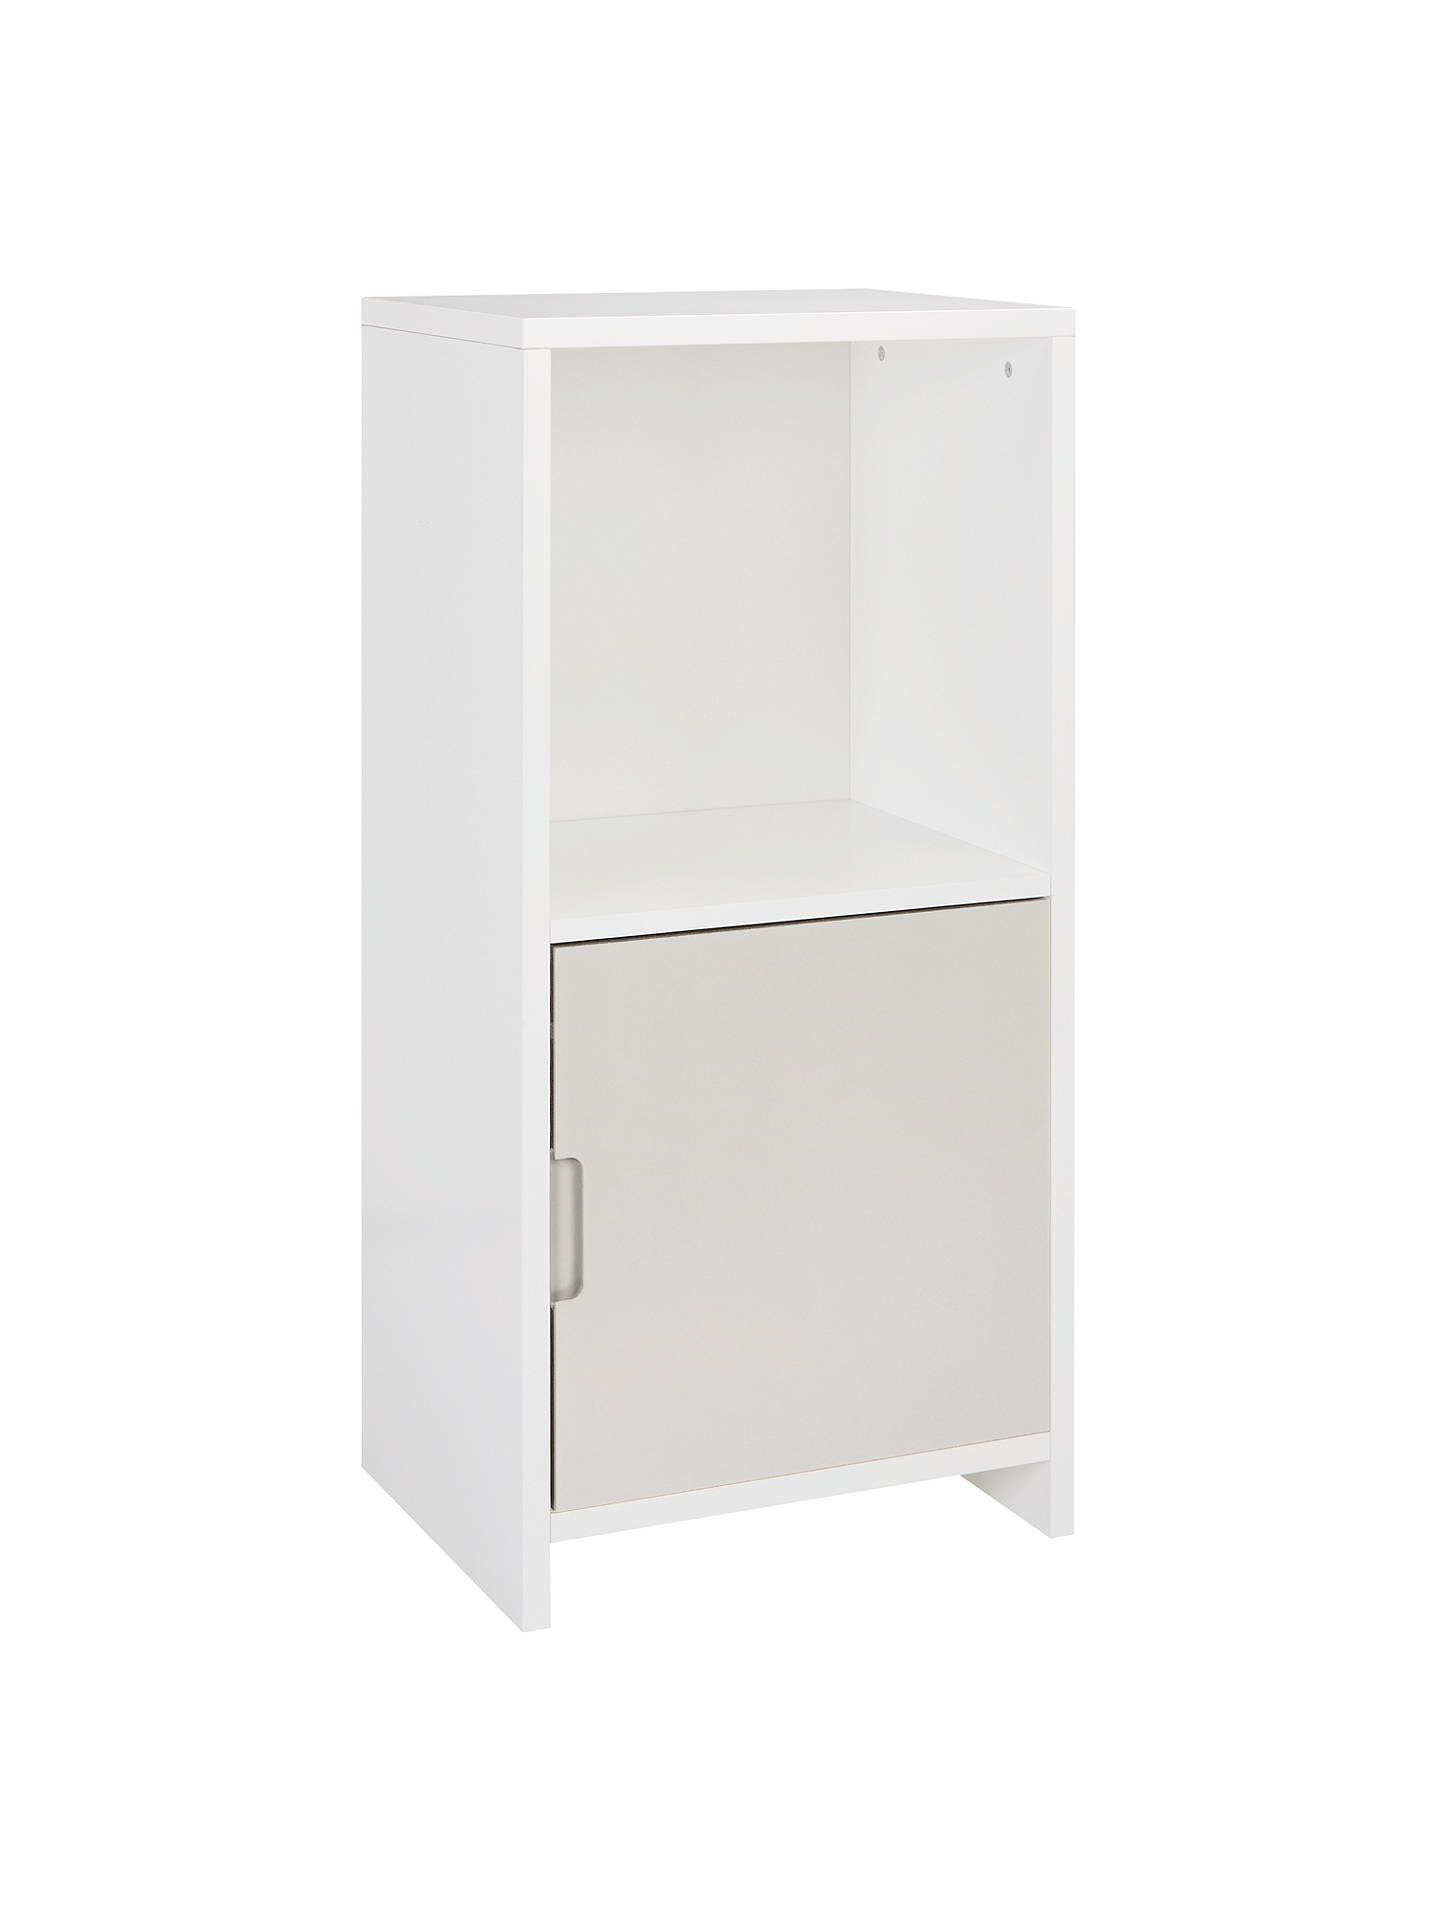 BuyHouse by John Lewis Oxford 1 x 2 Cube Unit with Door, Smoke / White Online at johnlewis.com